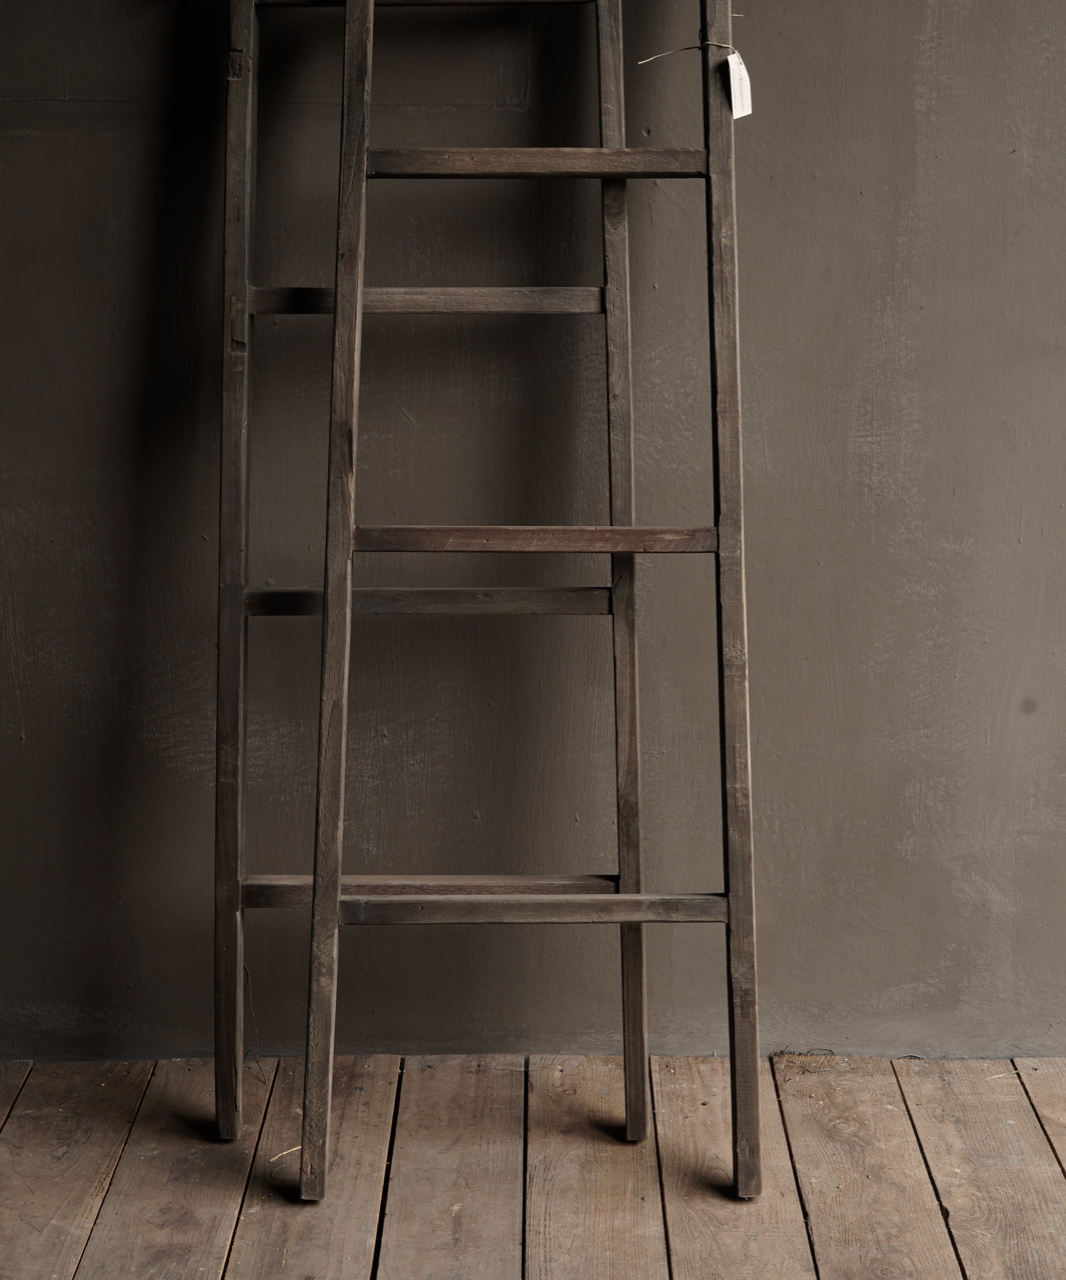 Stair / ladder made of old wood-3